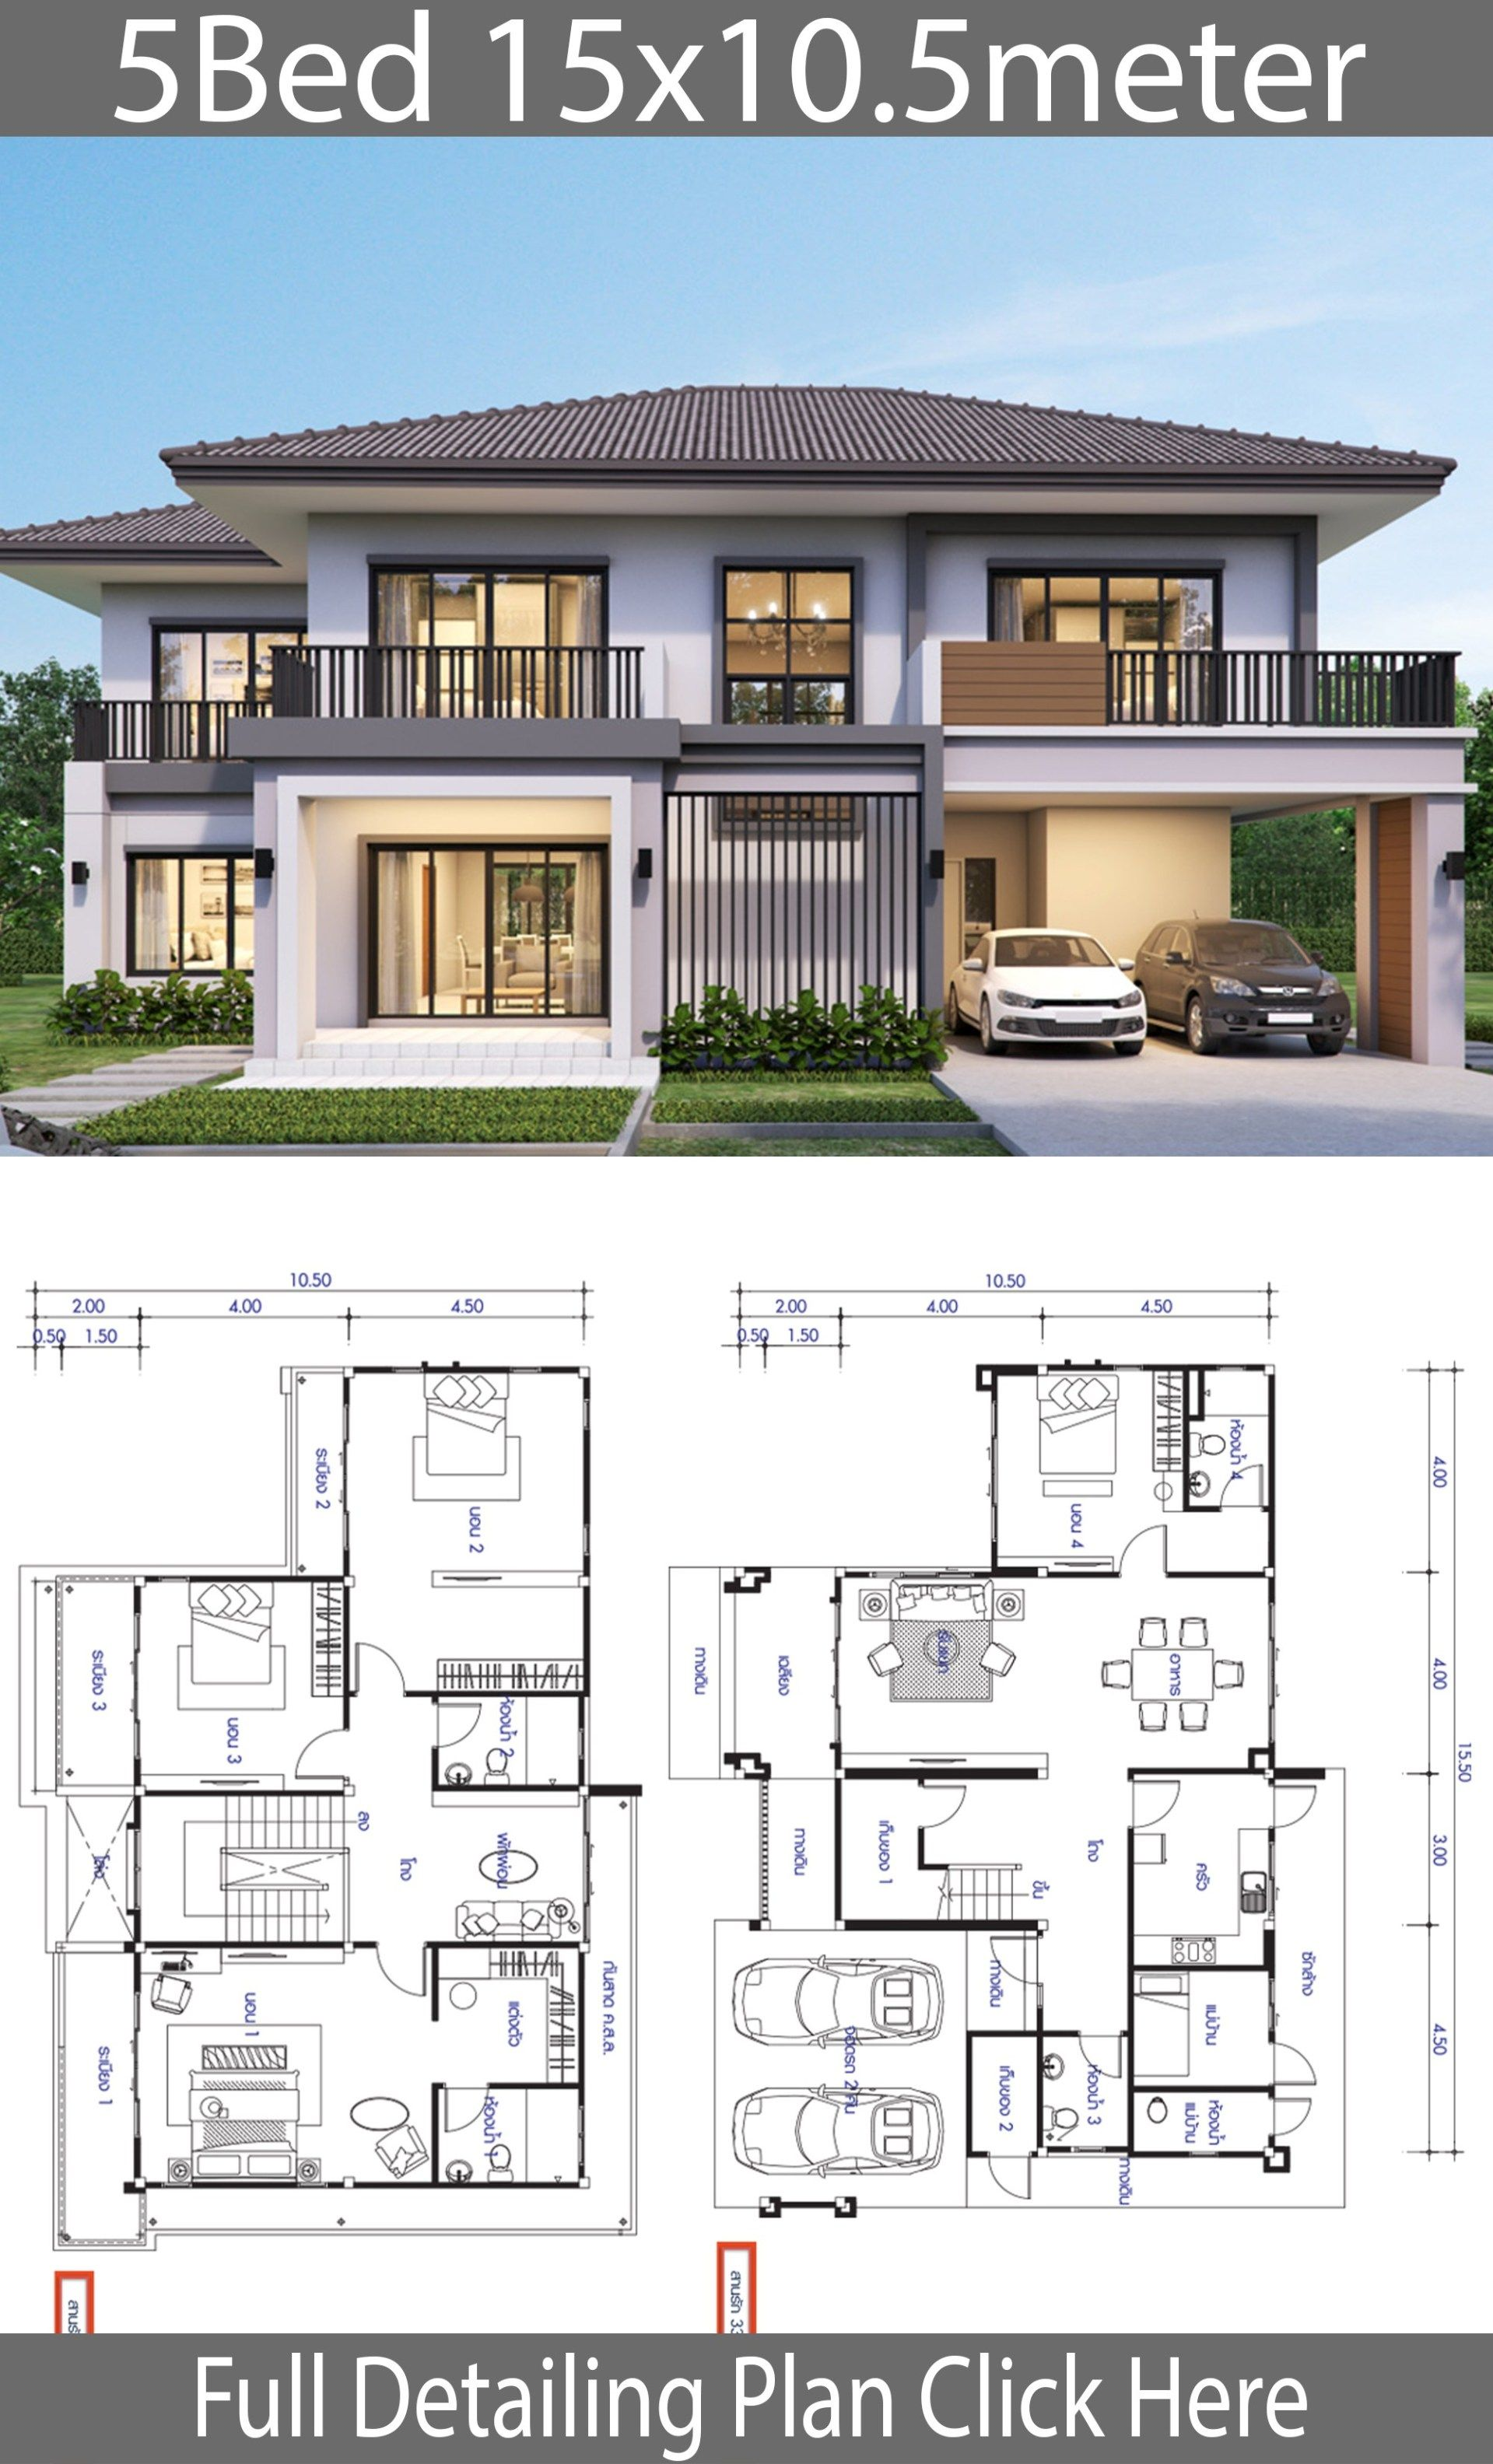 House Design Plan 15 5x10 5m With 5 Bedrooms Home Ideas Model House Plan Architectural House Plans Bungalow House Plans